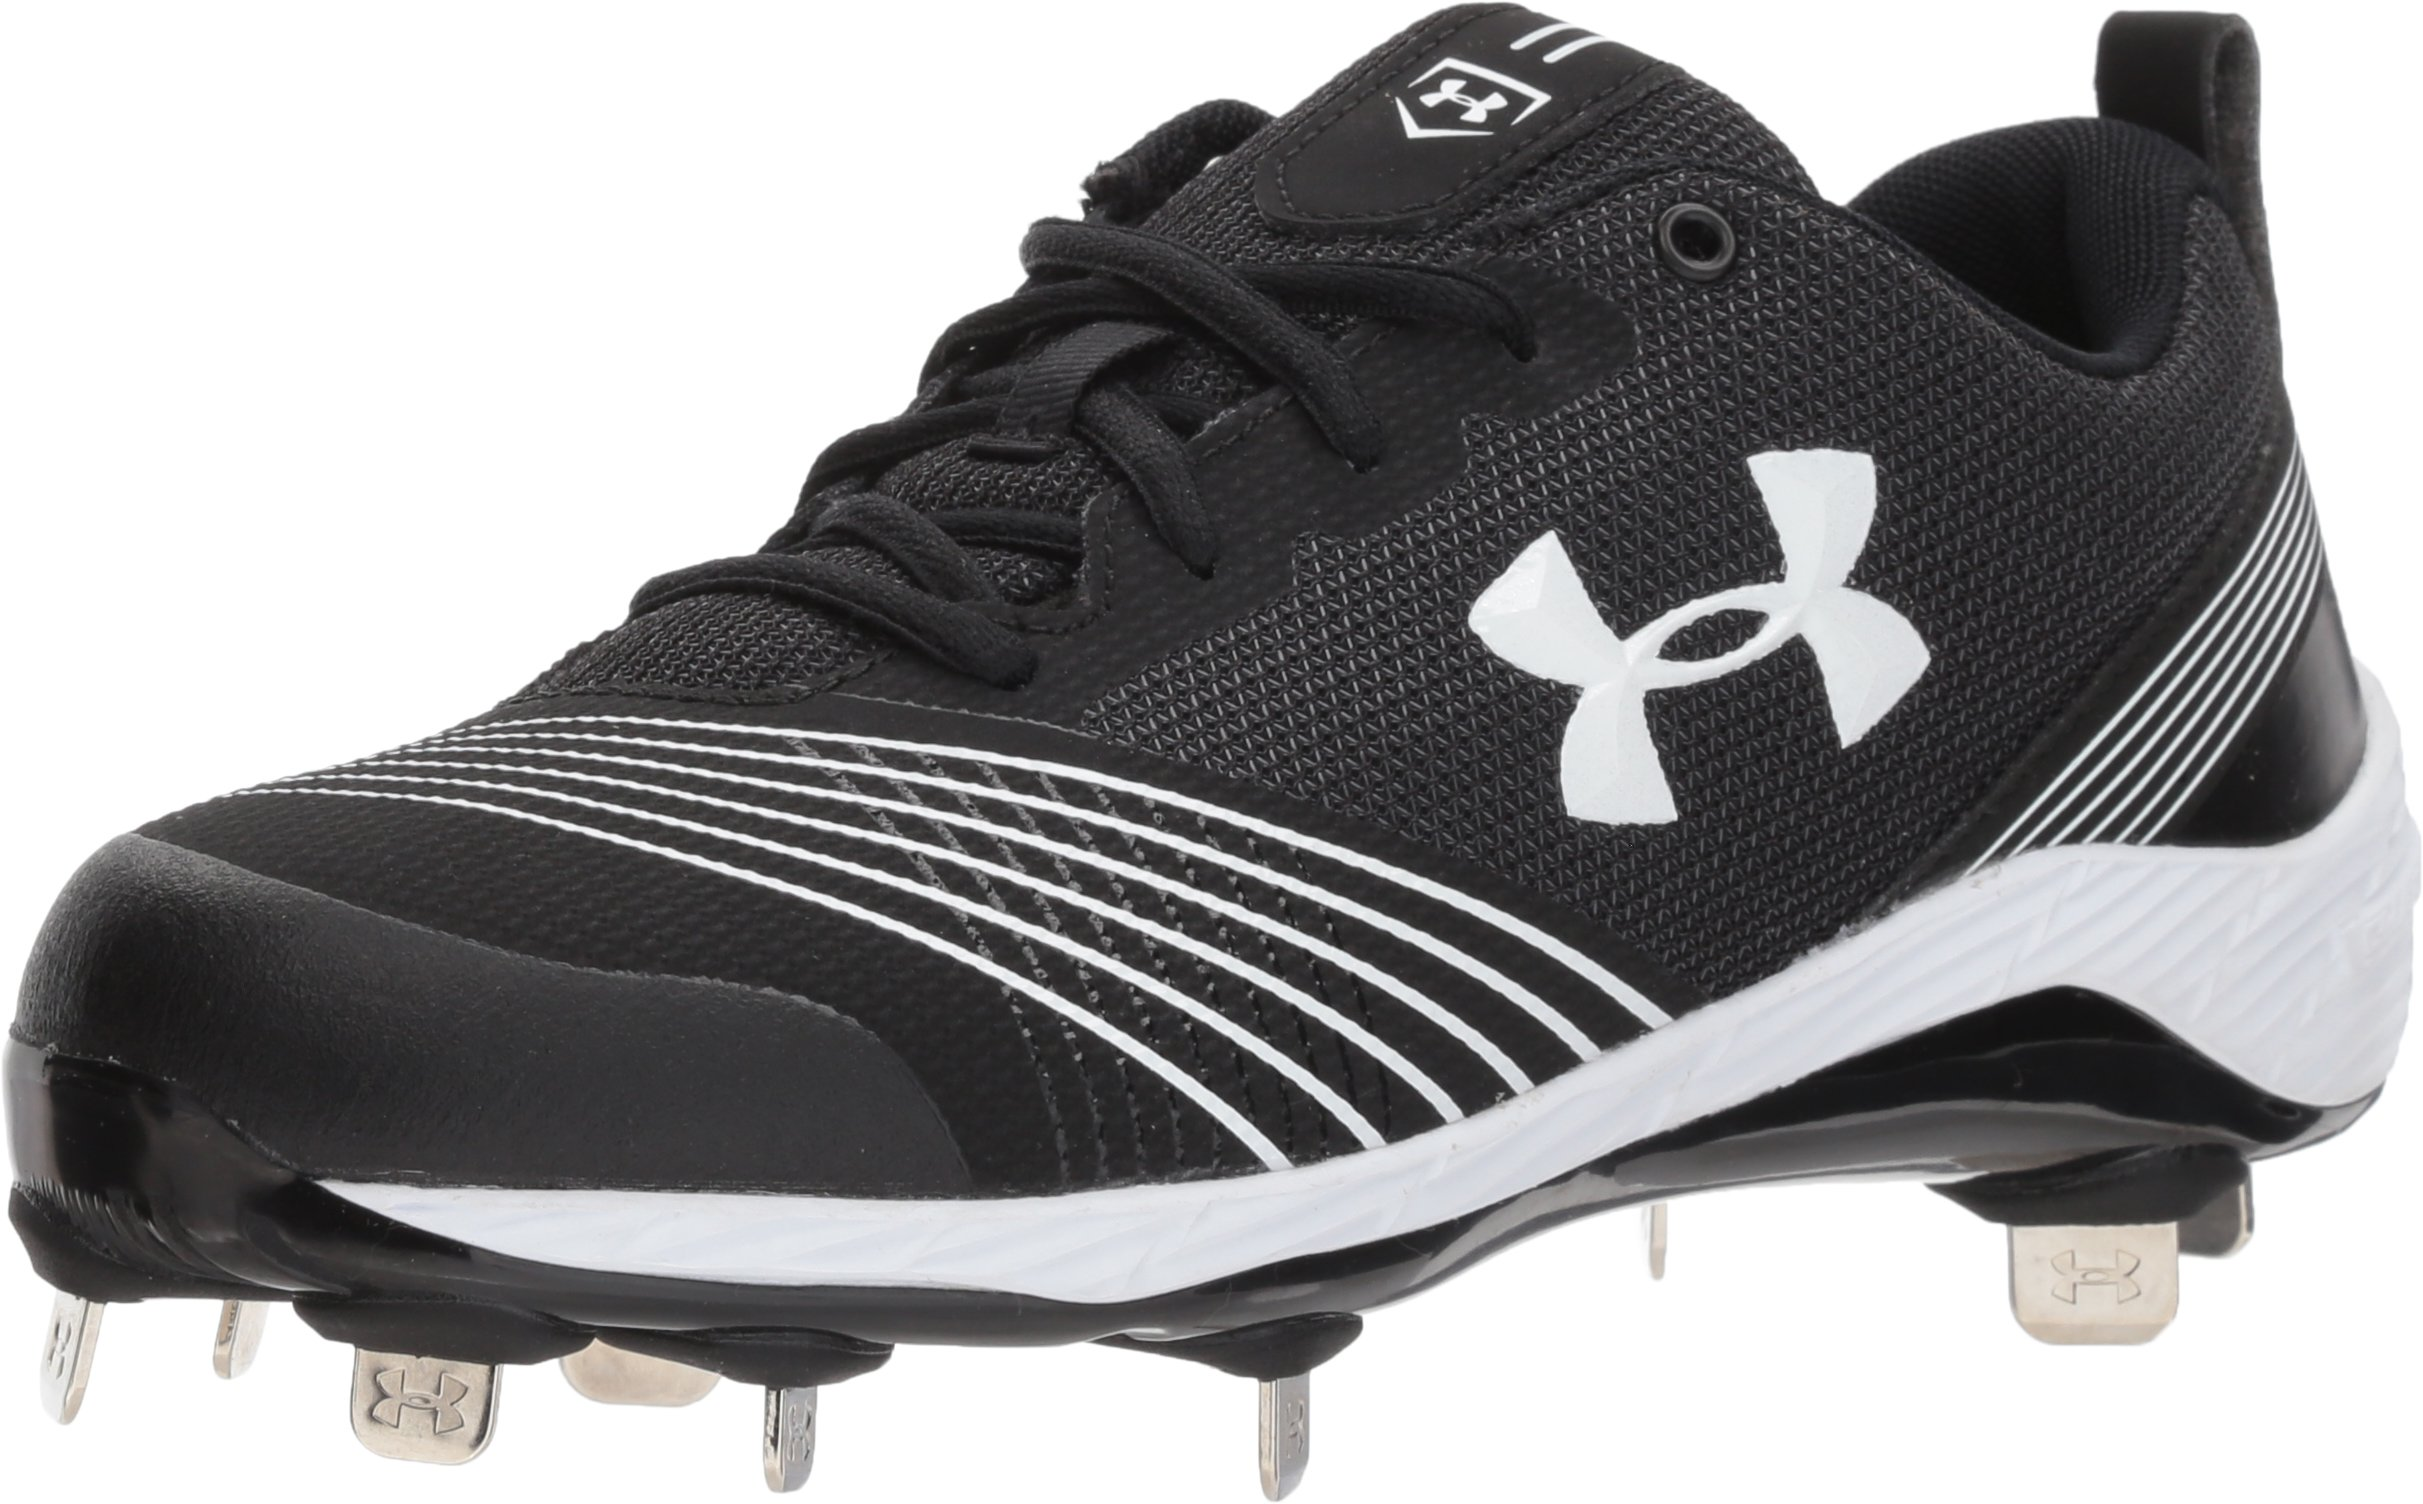 Under Armour Women's Glyde ST Softball Shoe, 011/Black, 8 by Under Armour